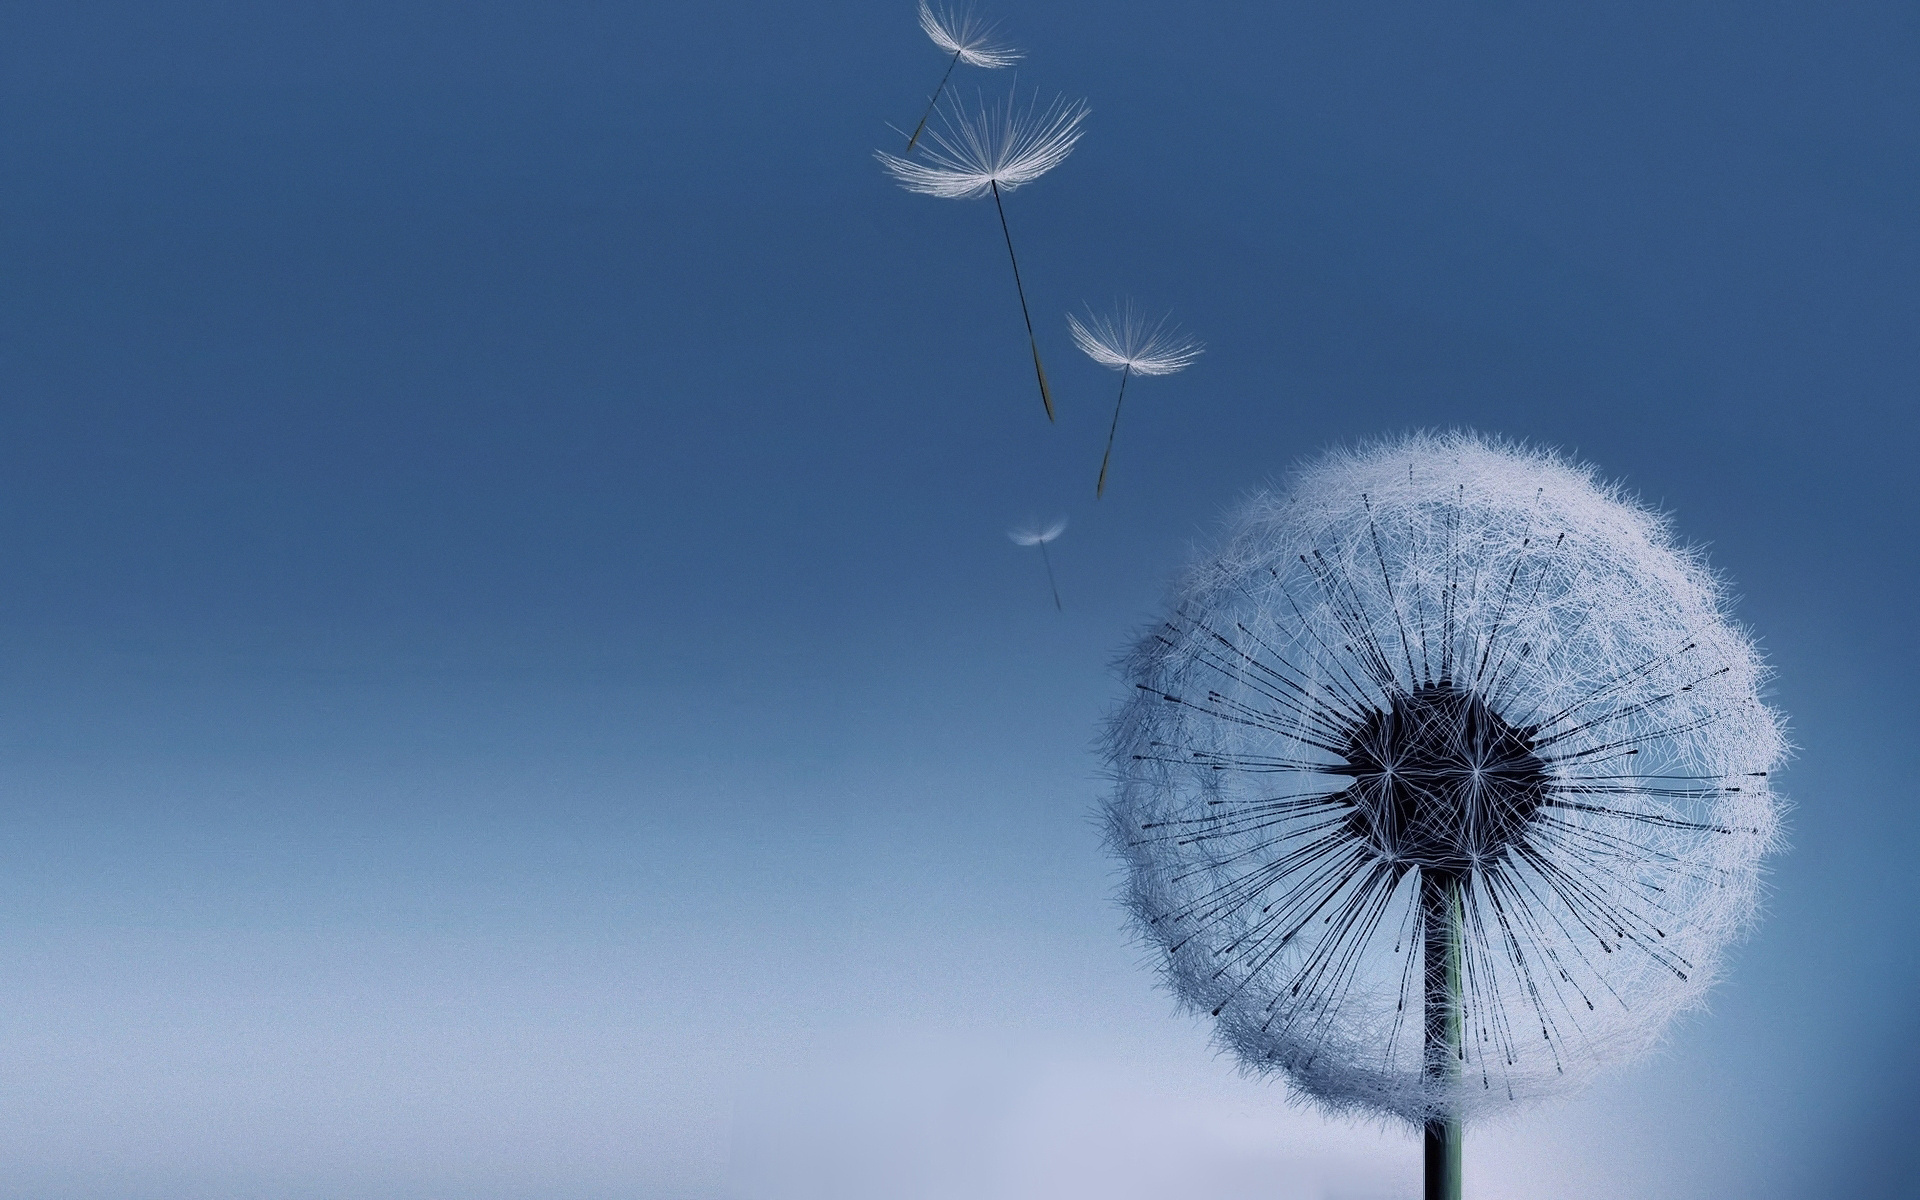 Dandelion Wallpaper; Dandelion Wallpaper; Dandelion Wallpaper ...